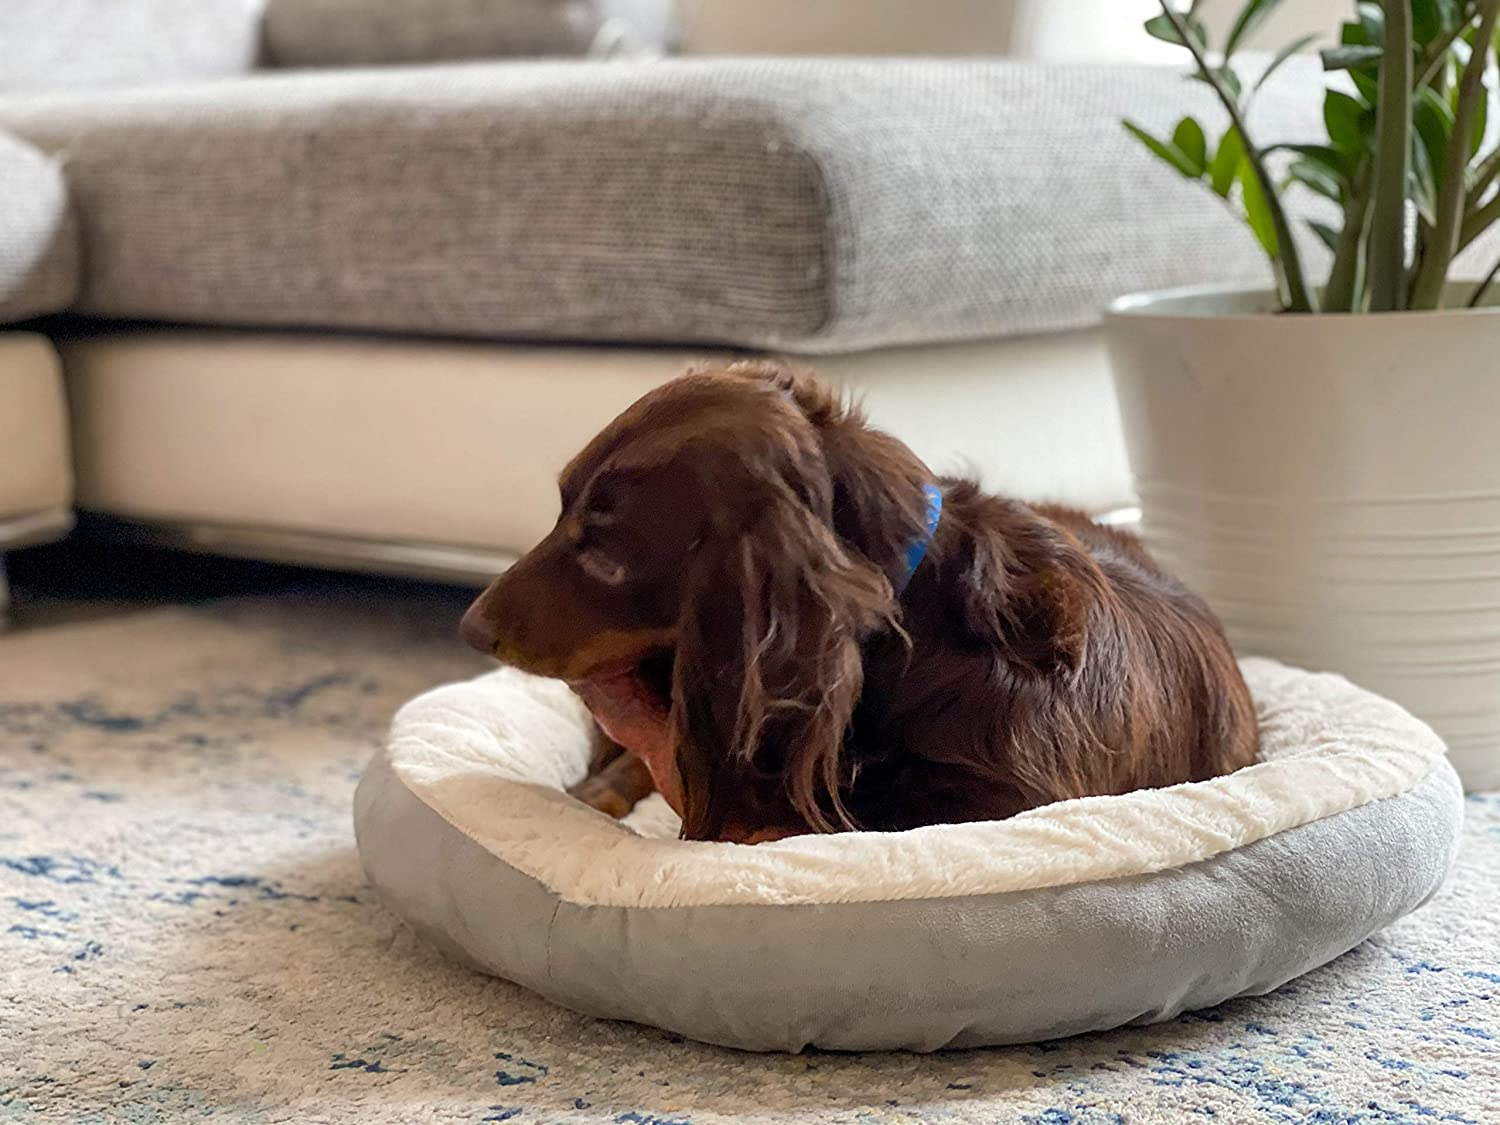 FMAL Max 51% OFF Small Dog and CAT Bed PET Limited time cheap sale Indoor BEDS Round for Dogs